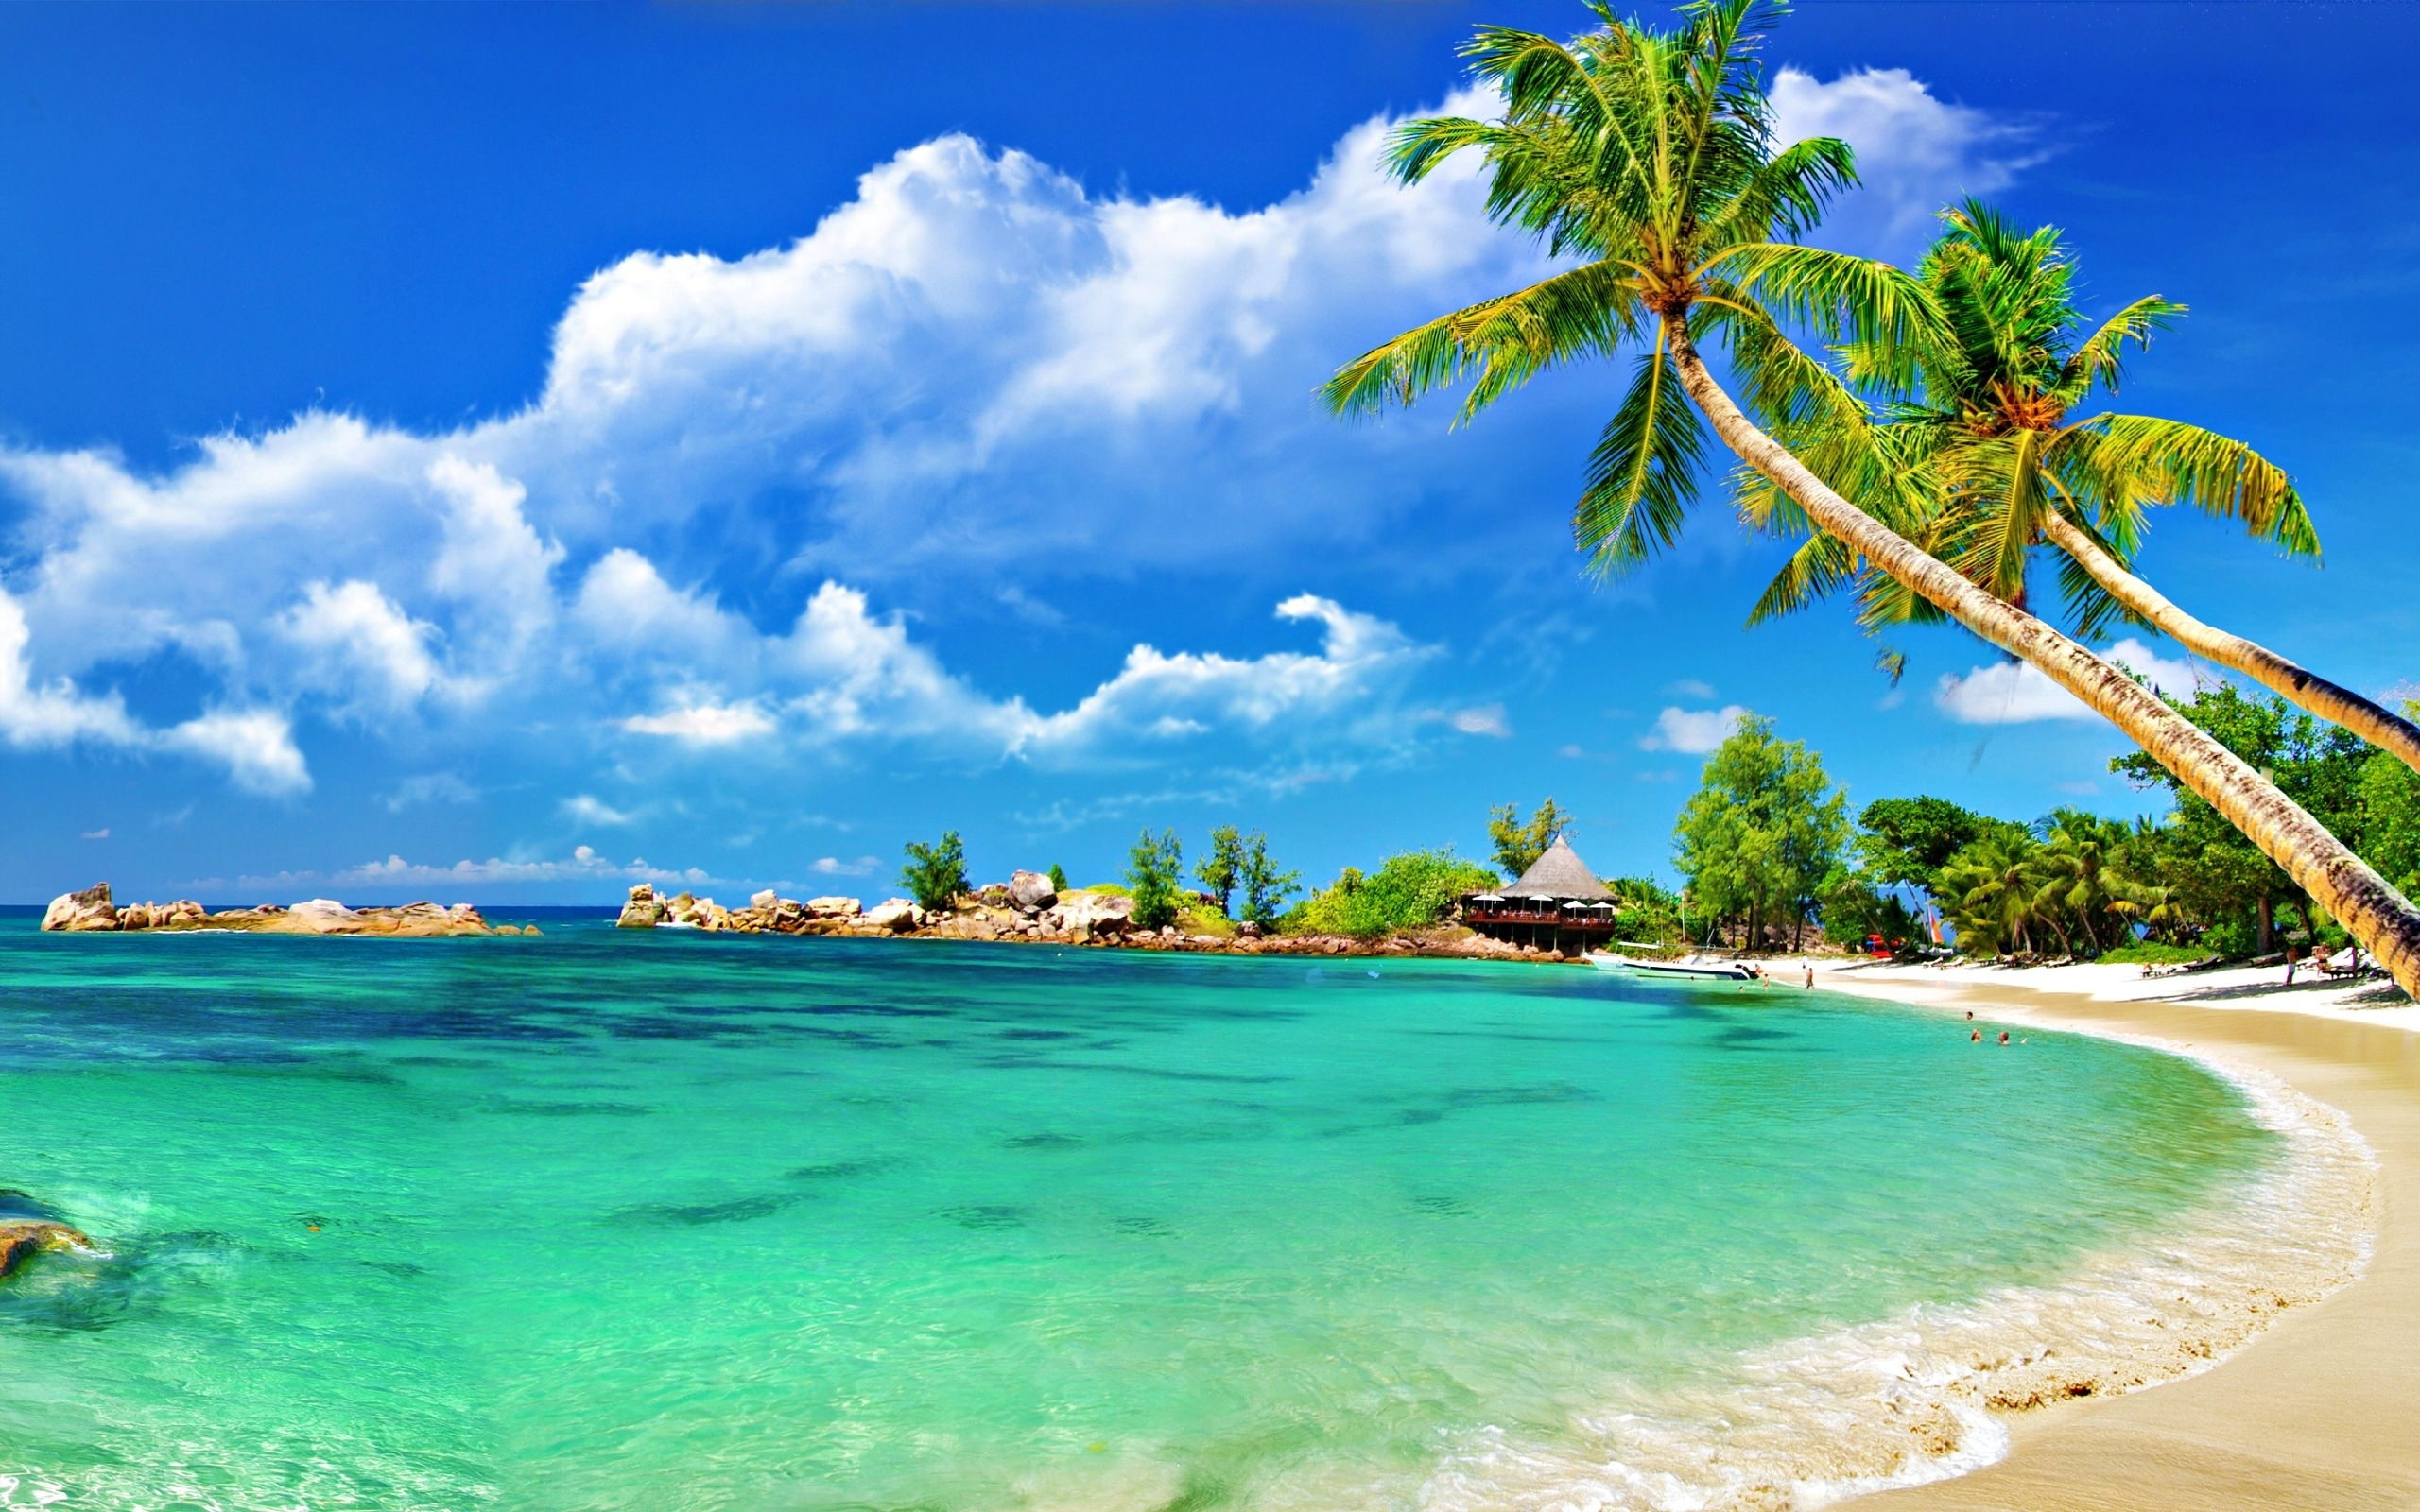 find out: beautiful seascape wallpaper on http://hdpicorner